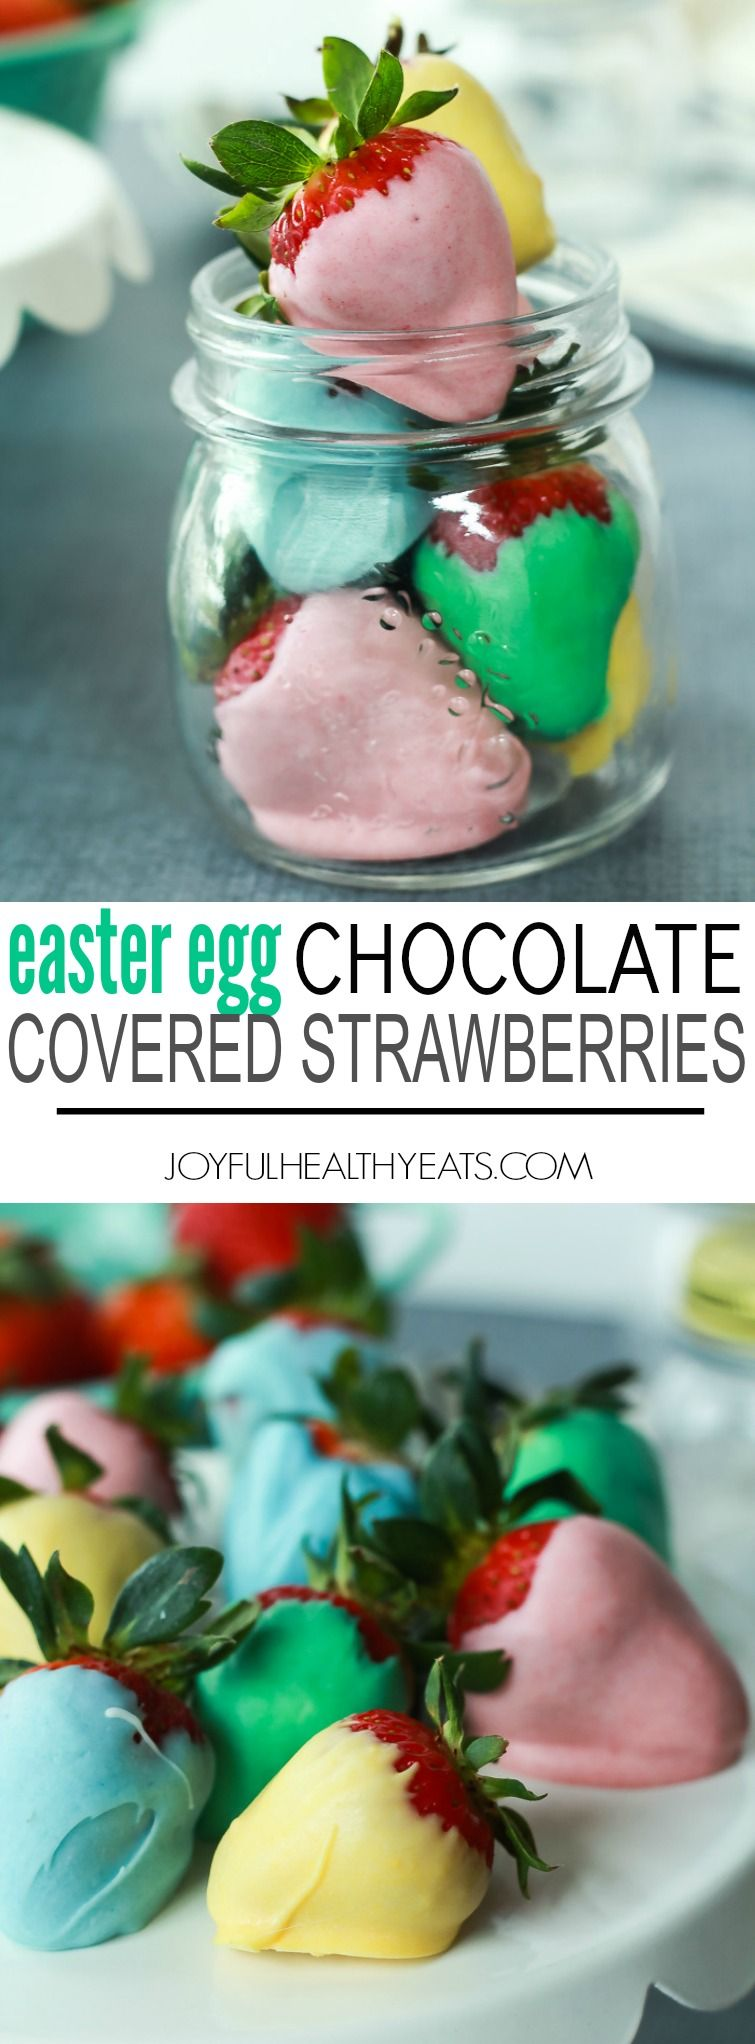 Easter Egg Chocolate Covered Strawberries Recipe using three ingredients - a fun festive dessert to make with your kids for Easter! | joyfulhealthyeats... #eastereggcrafts